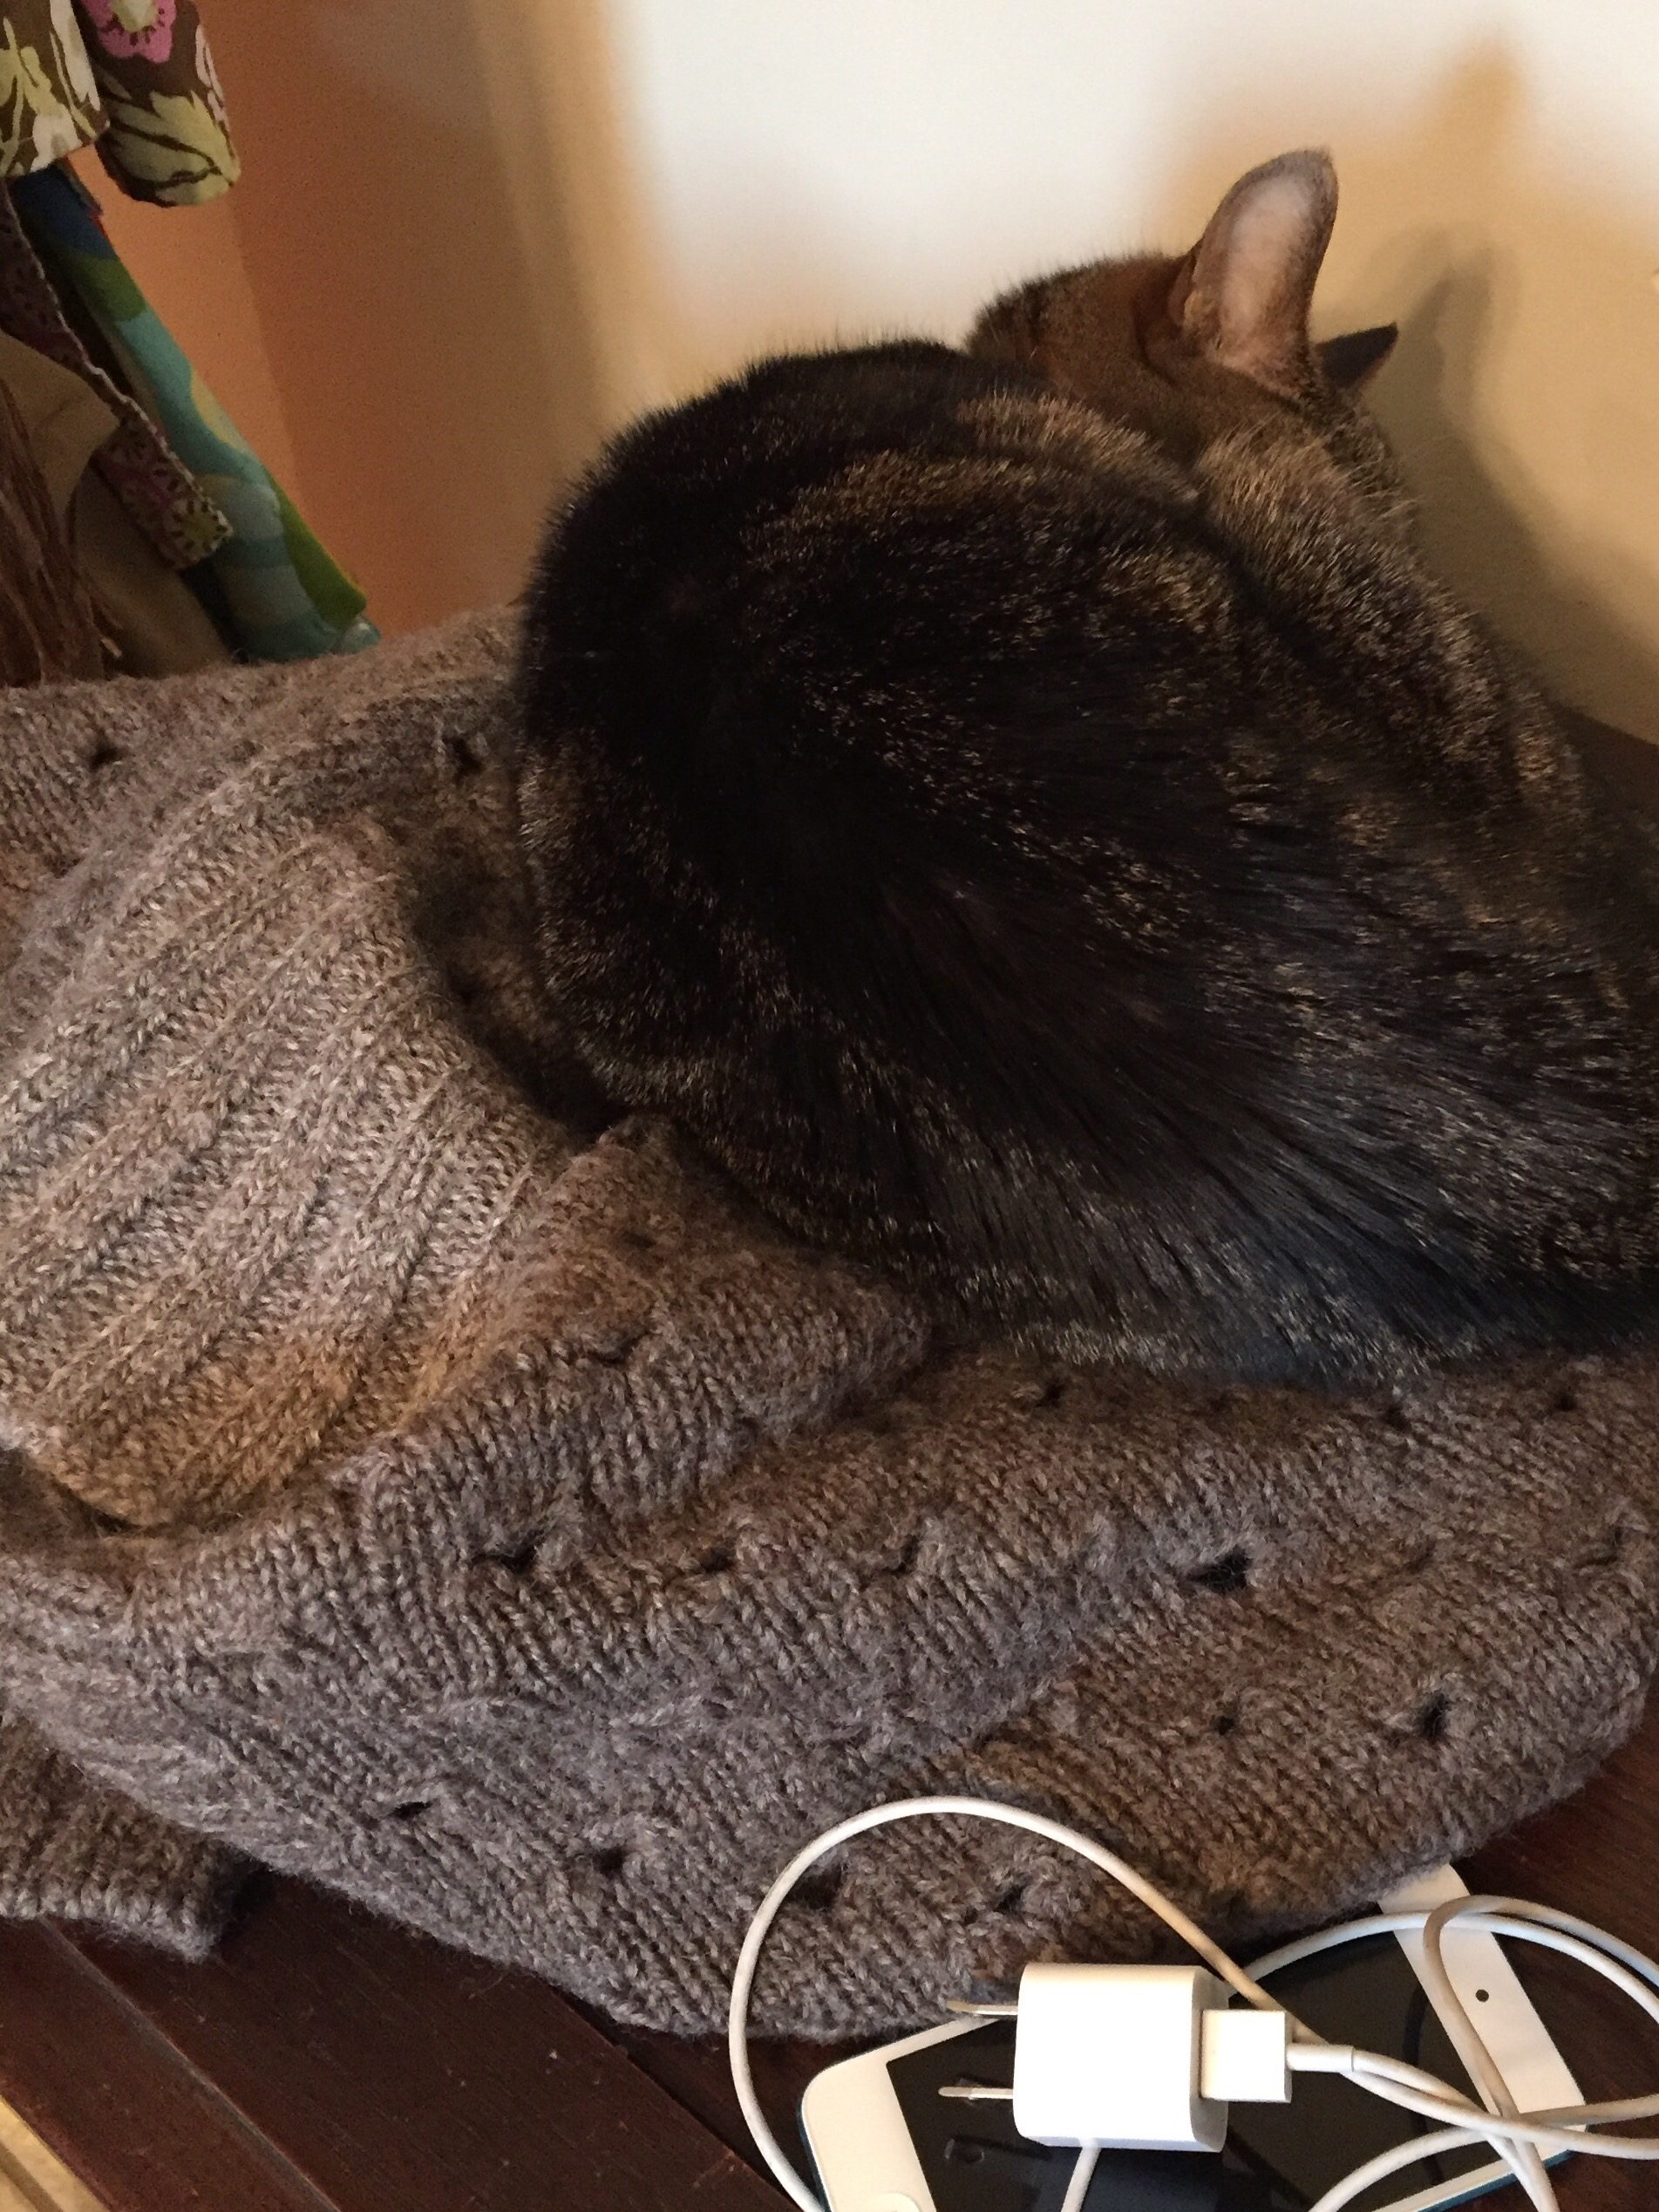 Tabby cat asleep on a handknit sweater